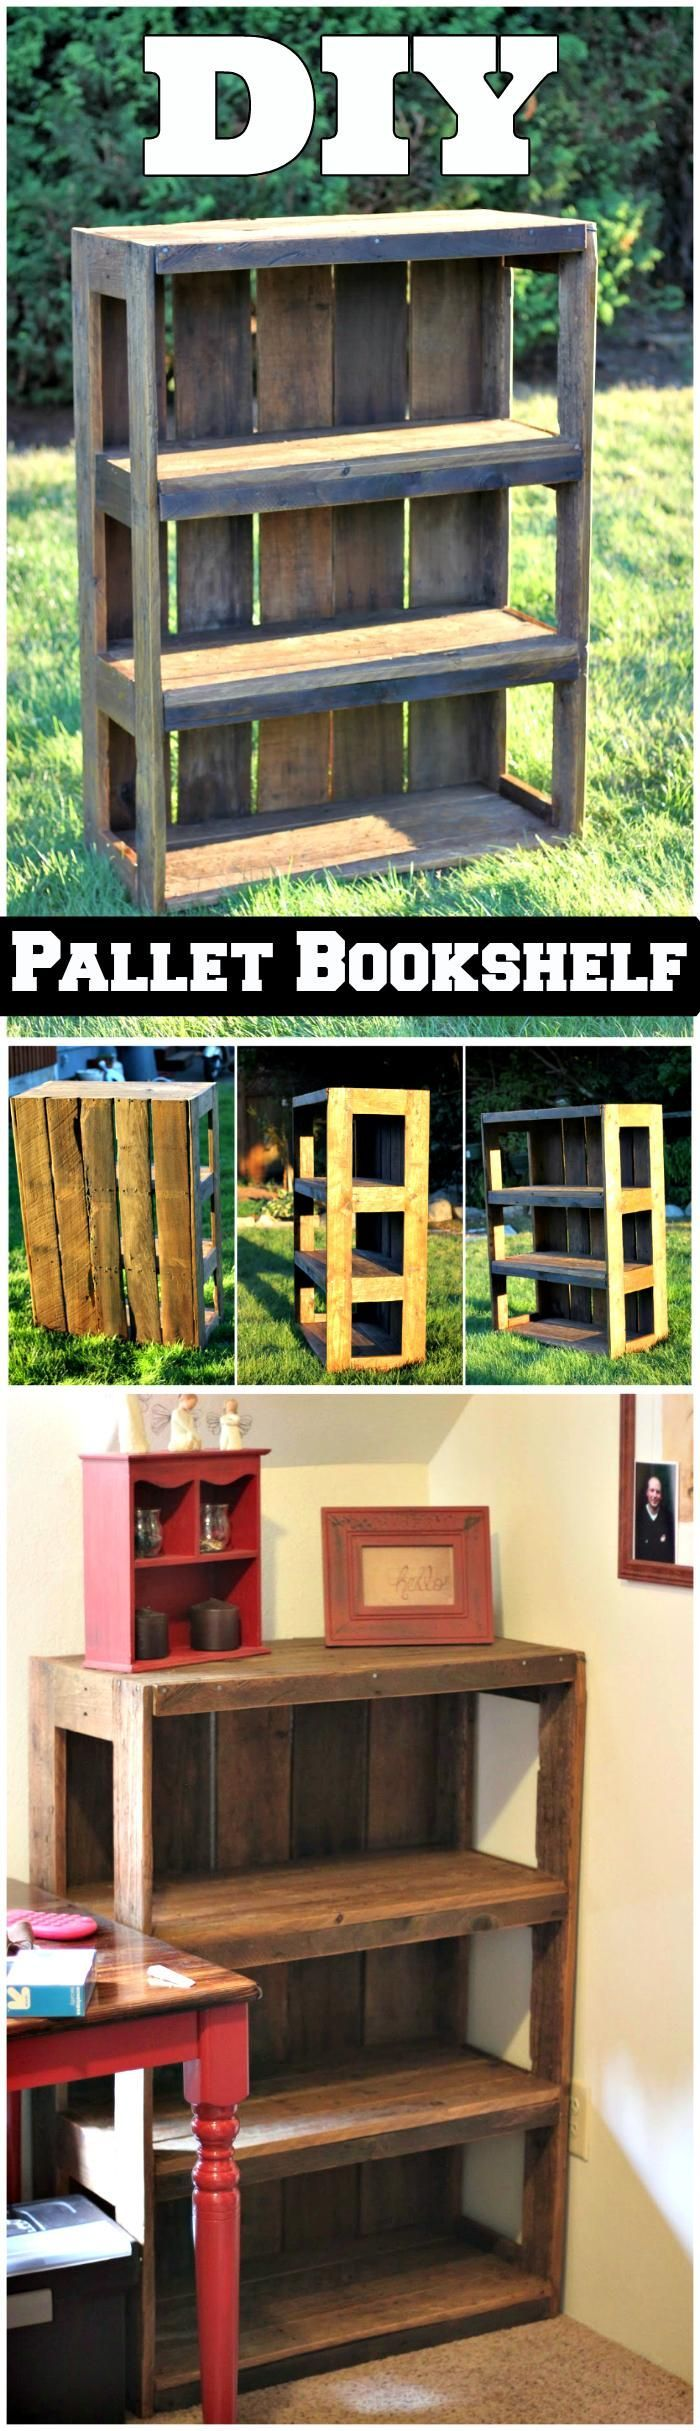 150 Best DIY Pallet Projects and Pallet Furniture Crafts - Page 56 of 75 - DIY & Crafts